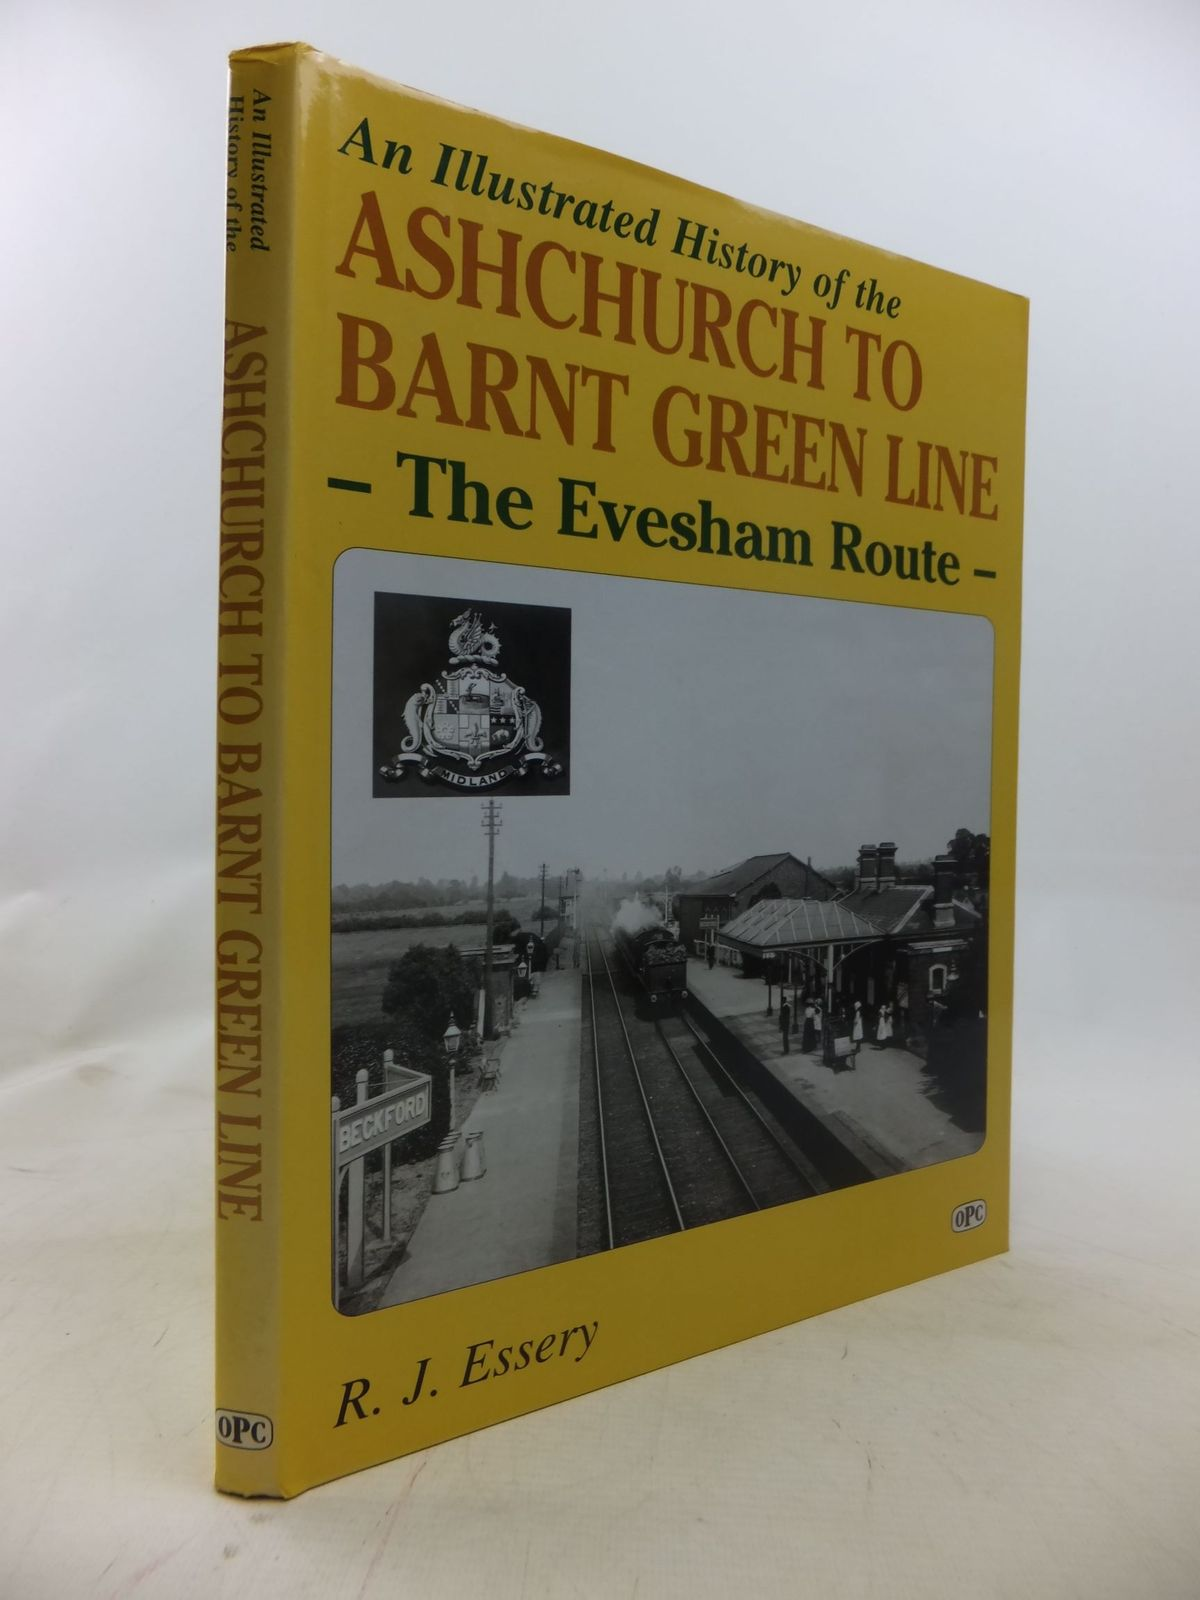 Photo of AN ILLUSTRATED HISTORY OF THE ASHCHURCH TO BARNT GREEN LINE - THE EVESHAM ROUTE written by Essery, R.J. published by Oxford Publishing (STOCK CODE: 1711901)  for sale by Stella & Rose's Books